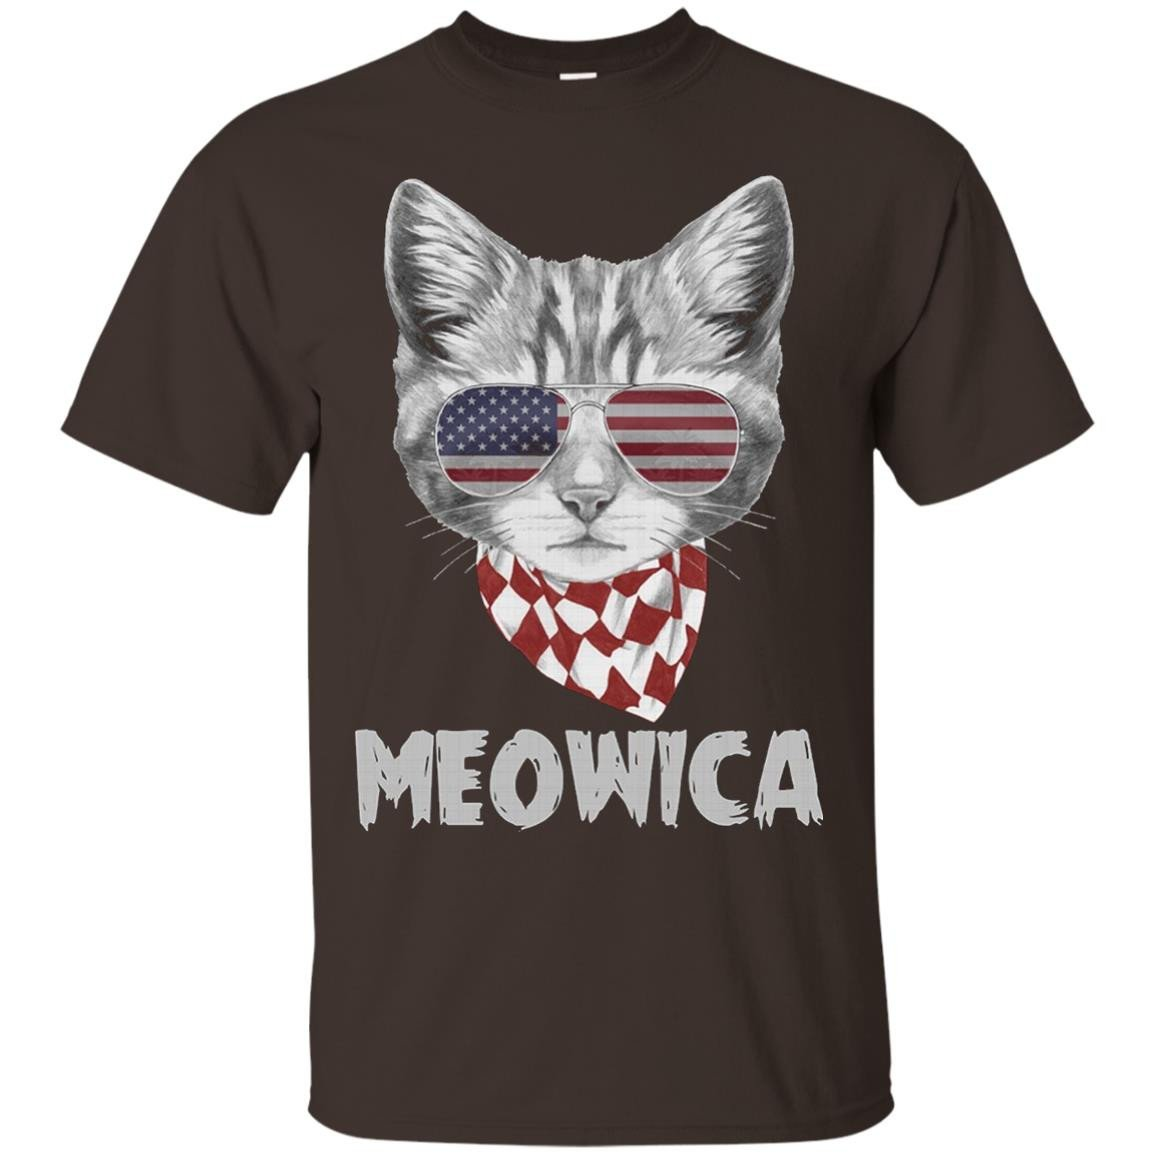 Meowica USA American Flag Cat, 4th Of July T Shirt - T-Shirt